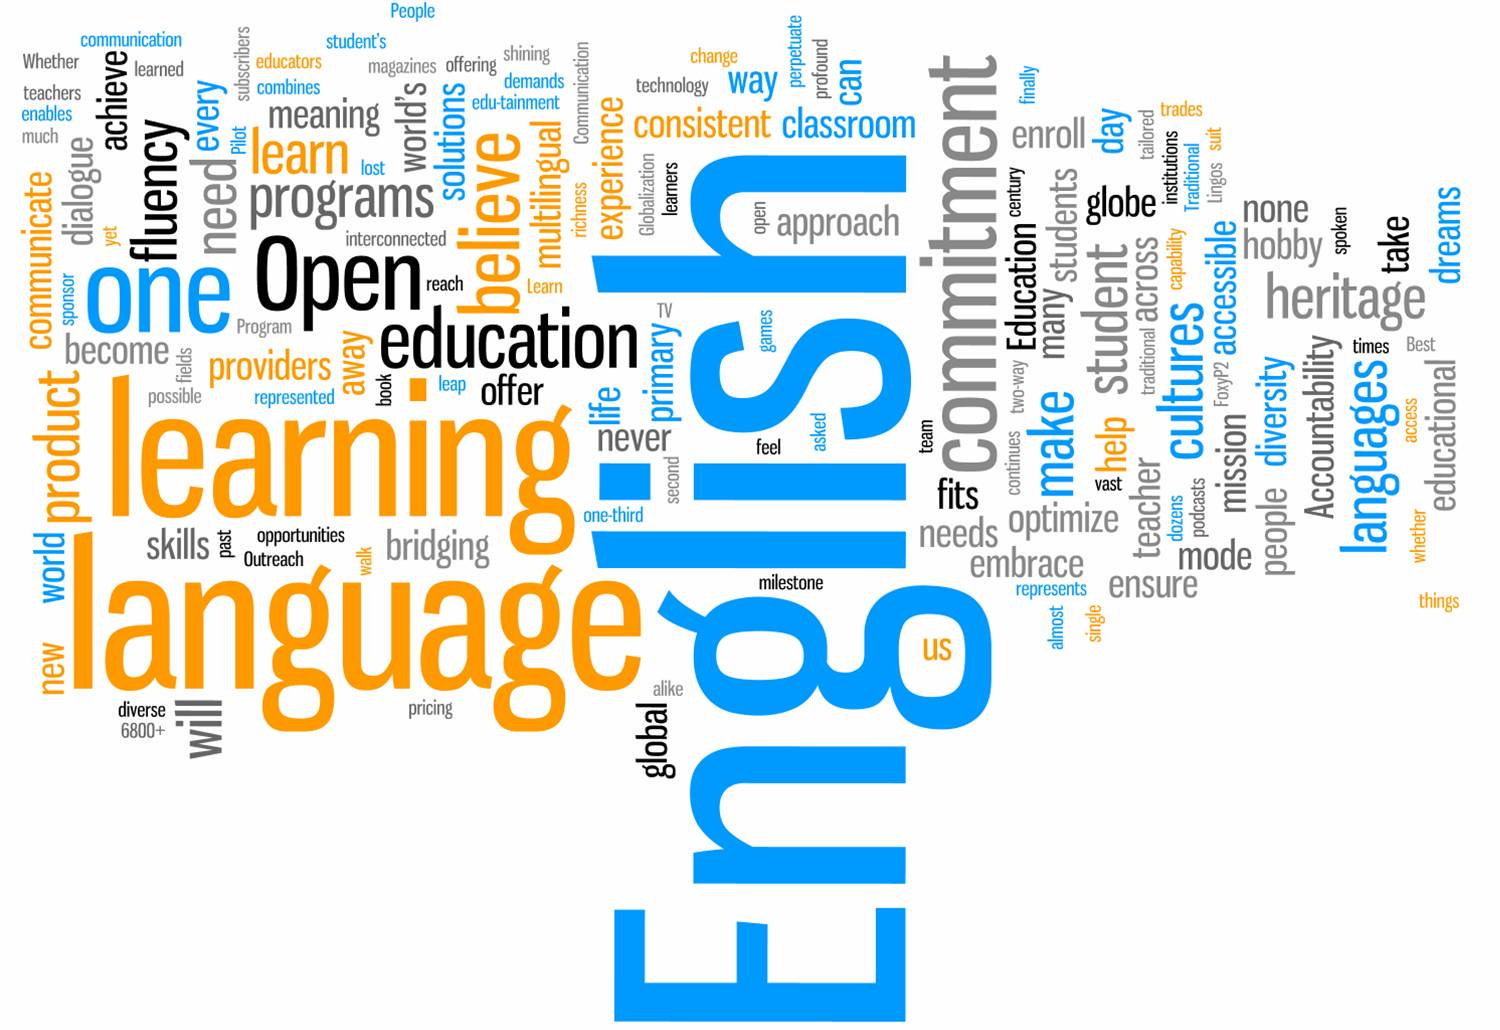 why foreign language is important in my future Top 5 reasons your child will benefit from learning a foreign language college students, and young adults the importance of opening one's mind to learning about and embracing other cultures here are our top 5 reasons your child will benefit from learning a foreign language 1.